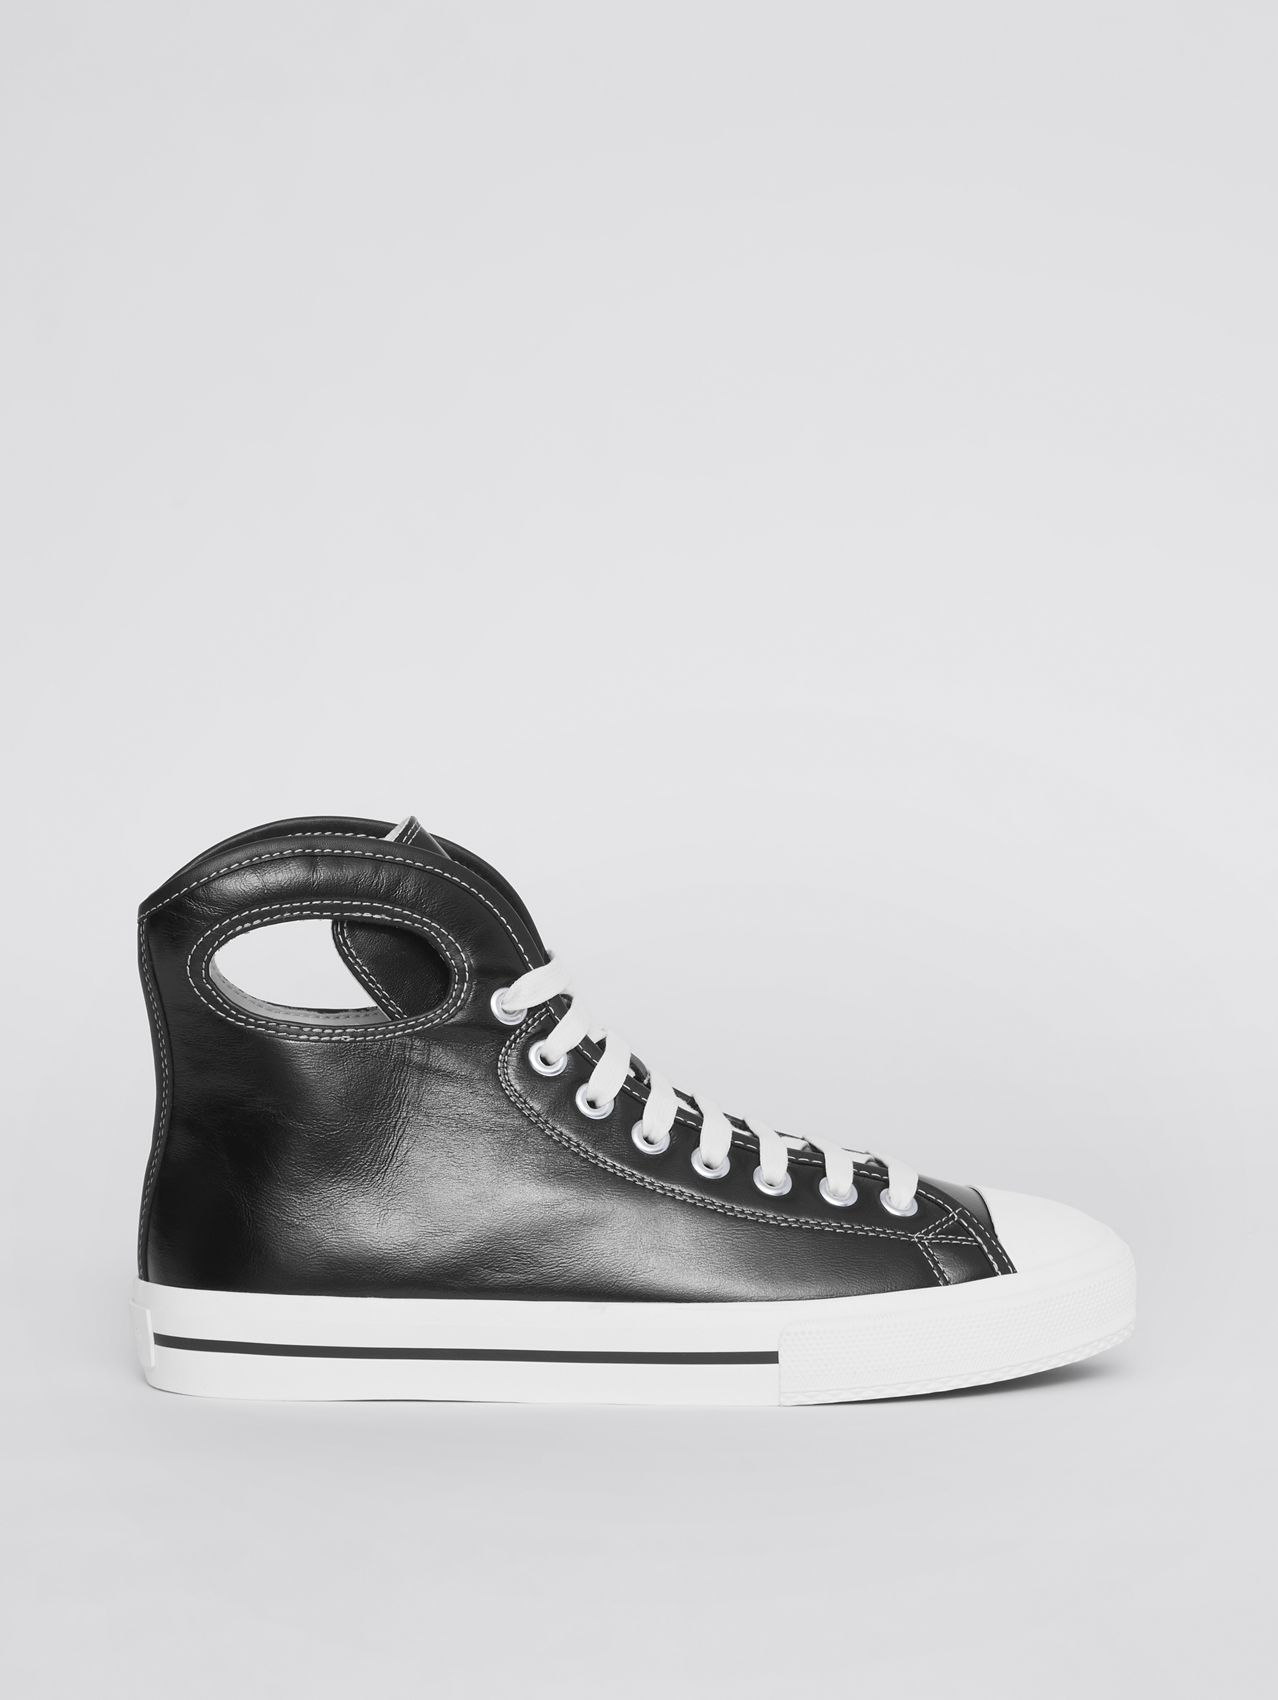 Porthole Detail Leather High-top Sneakers in Black